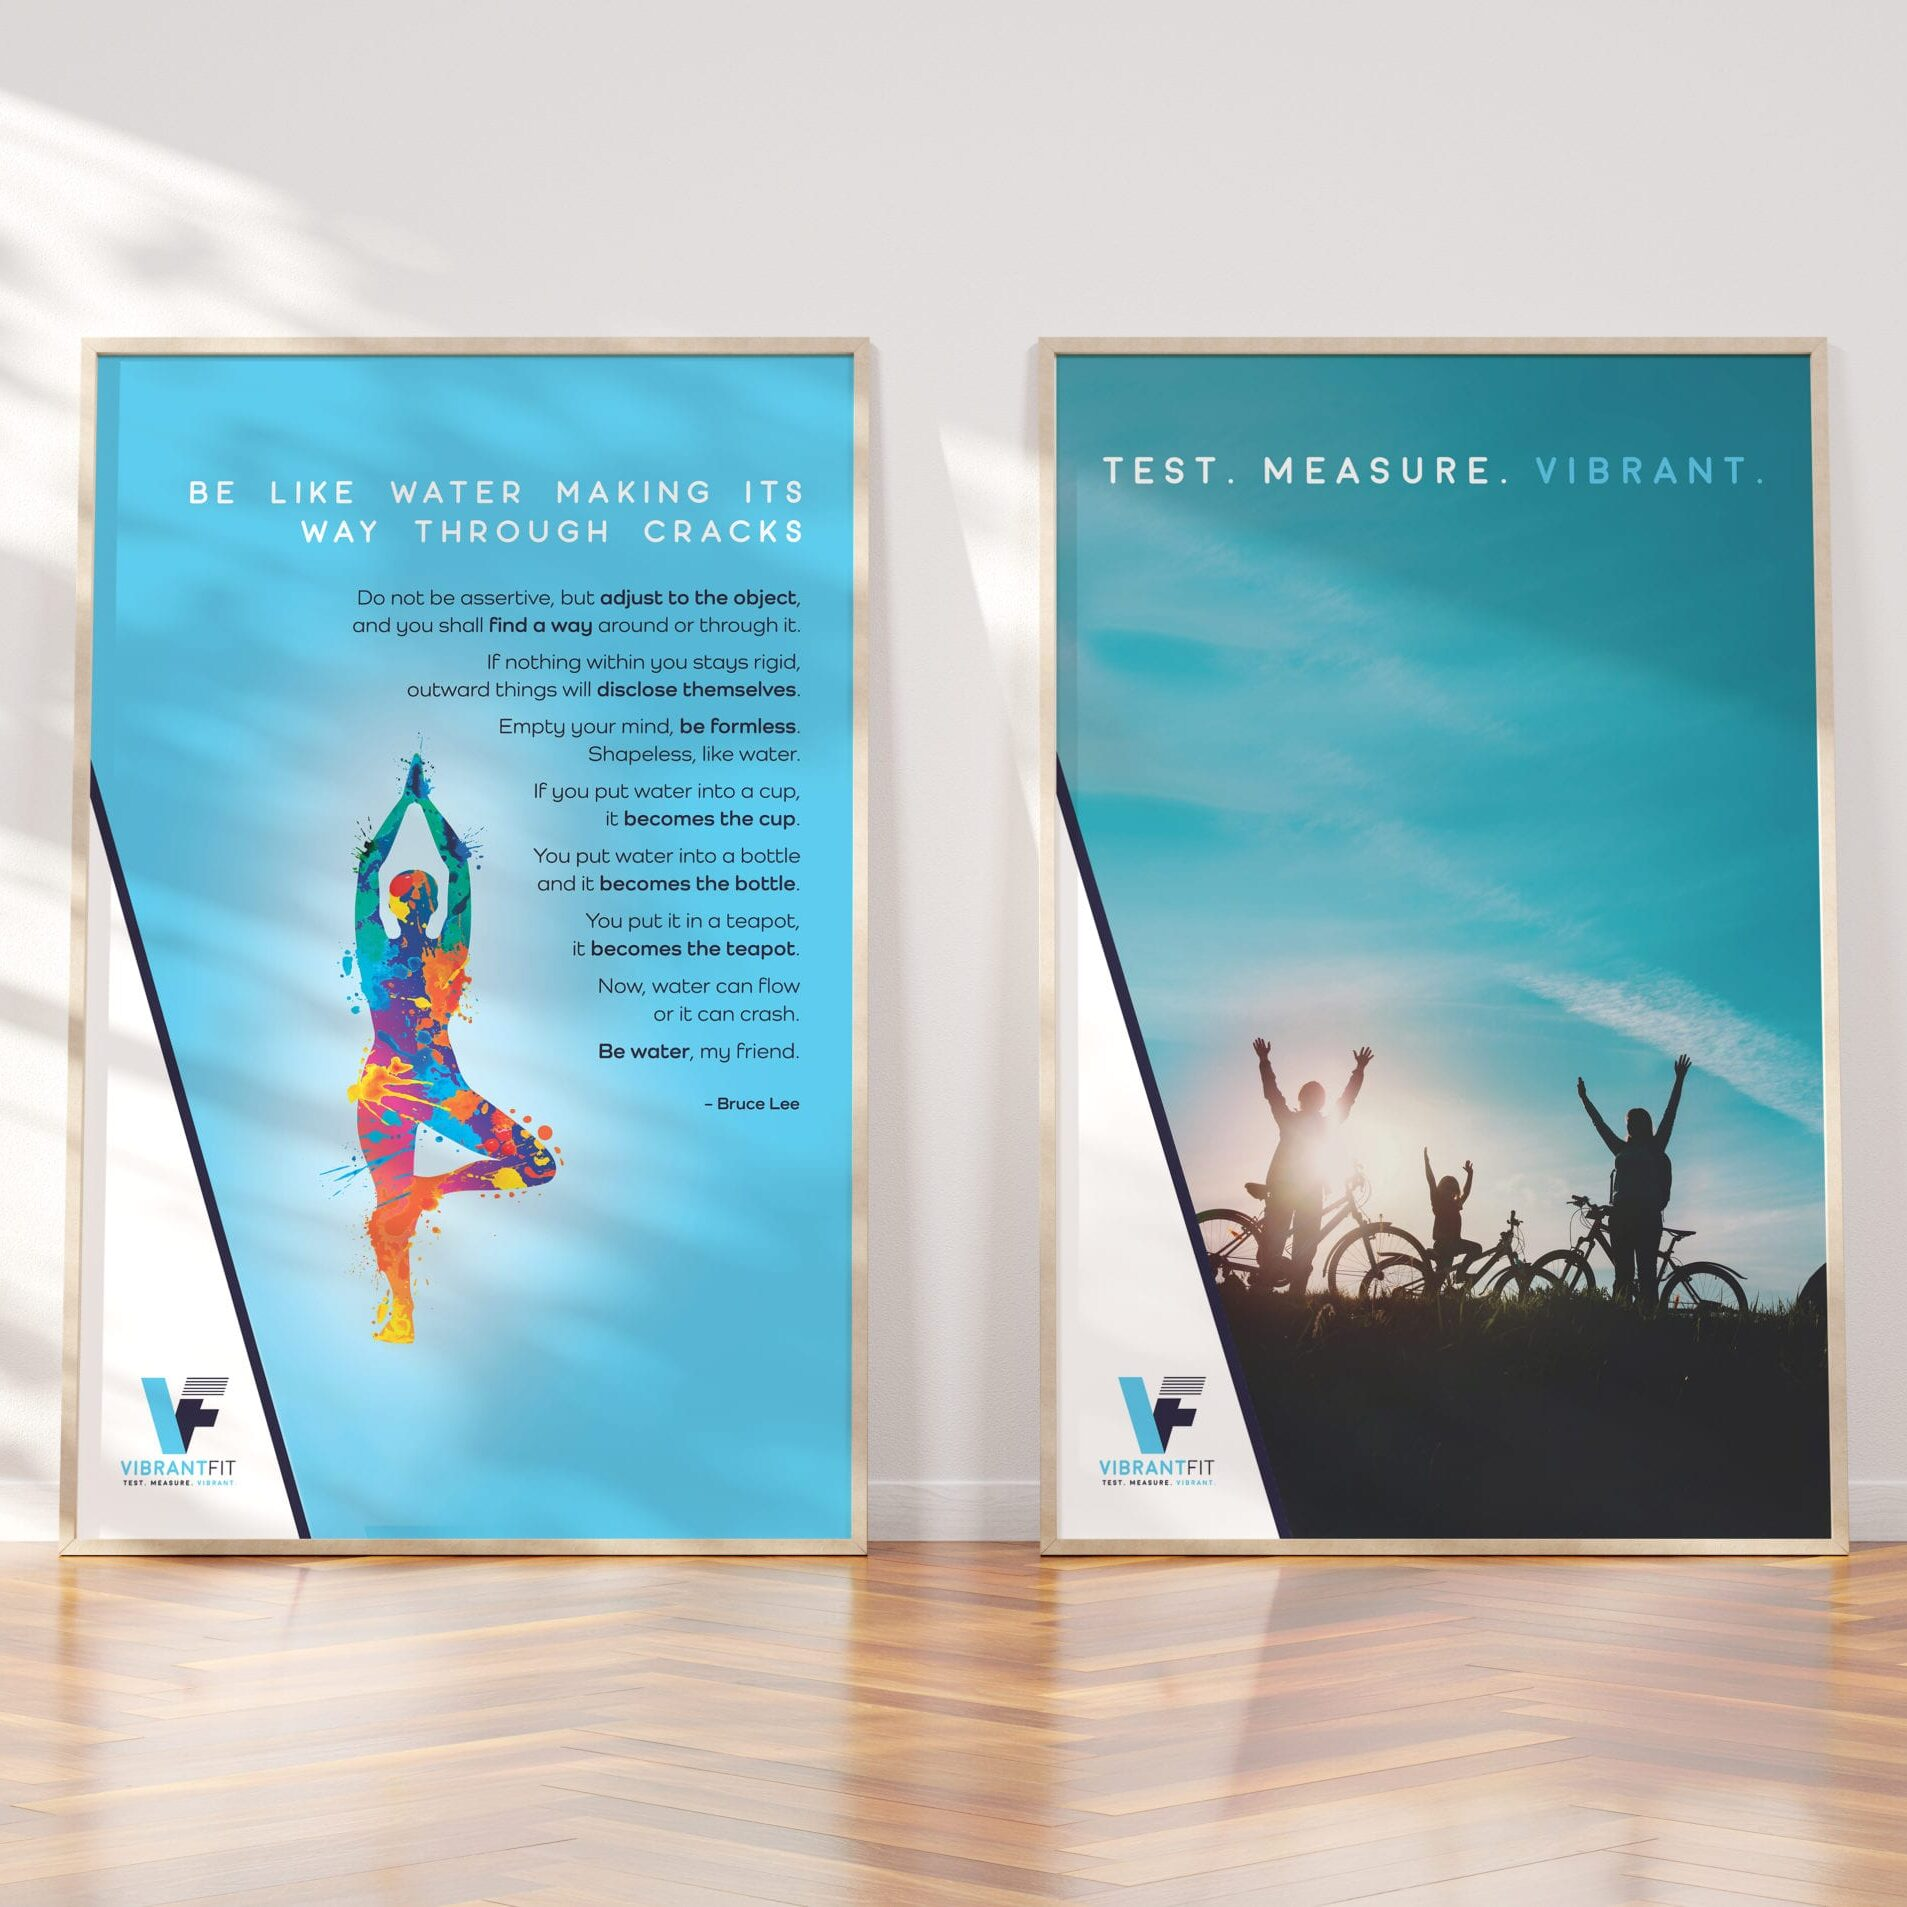 Gym board designs for Vibrandtfit